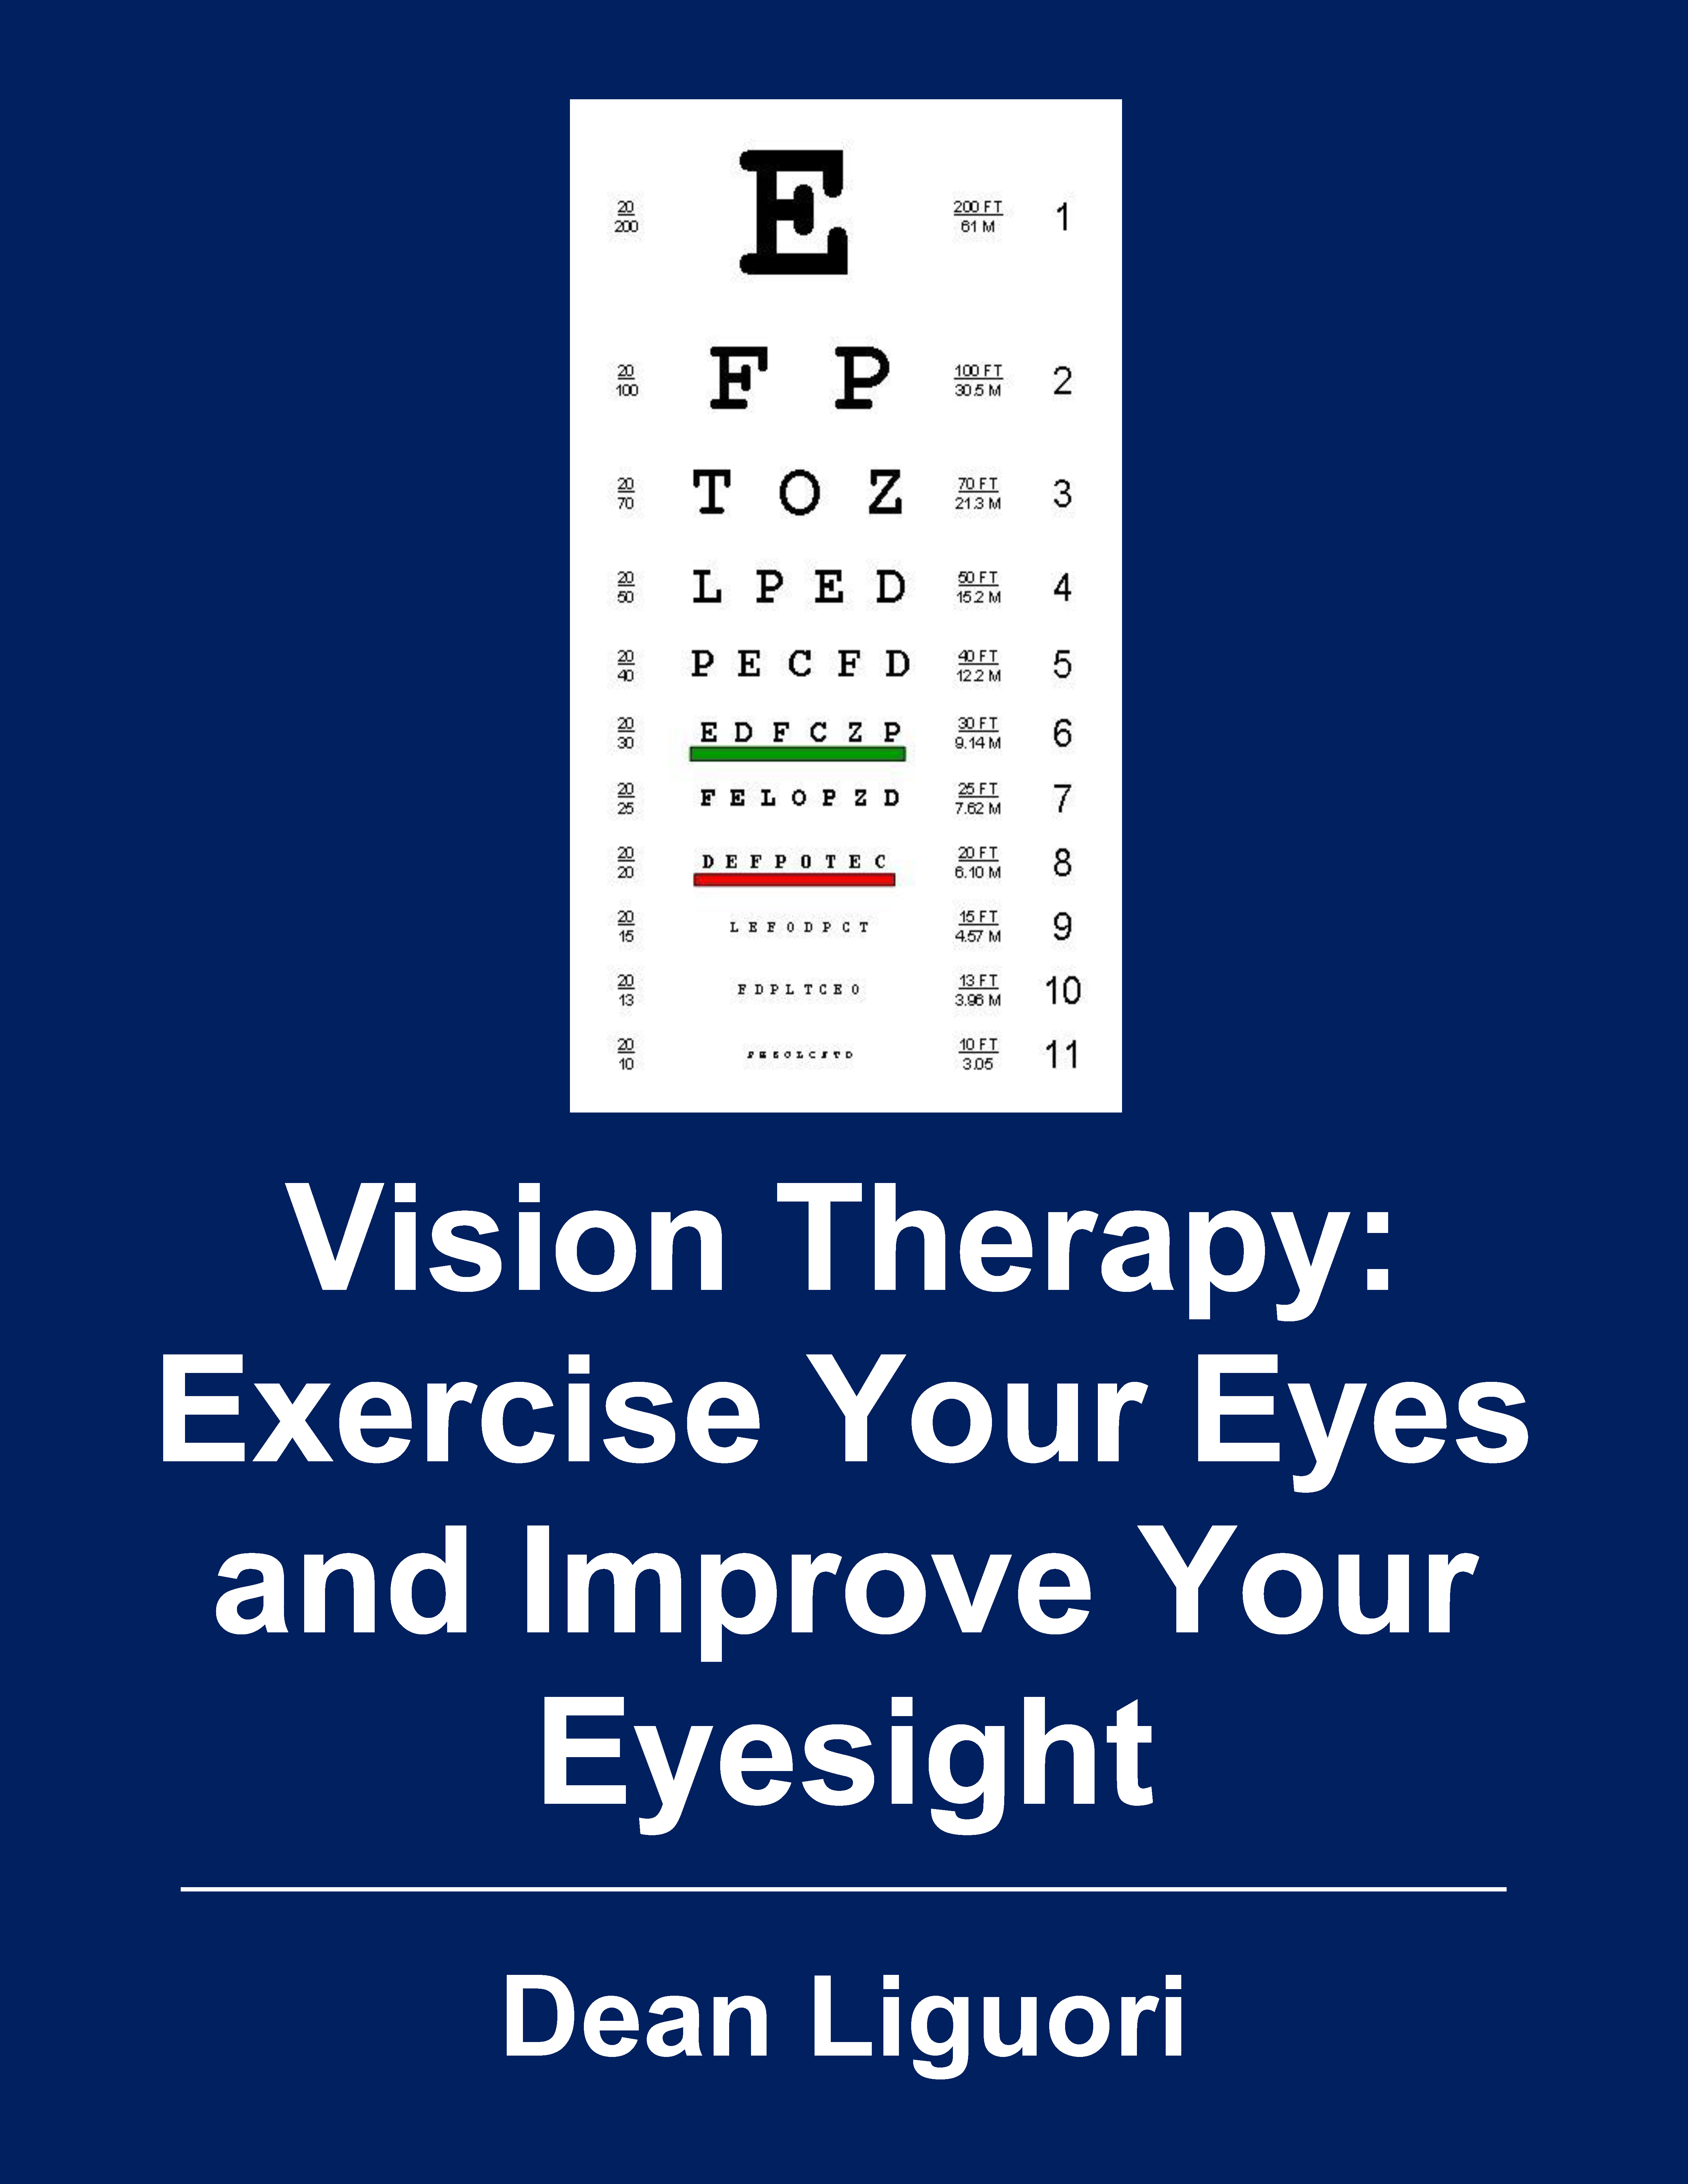 ImproveYourVision Vision Therapy System